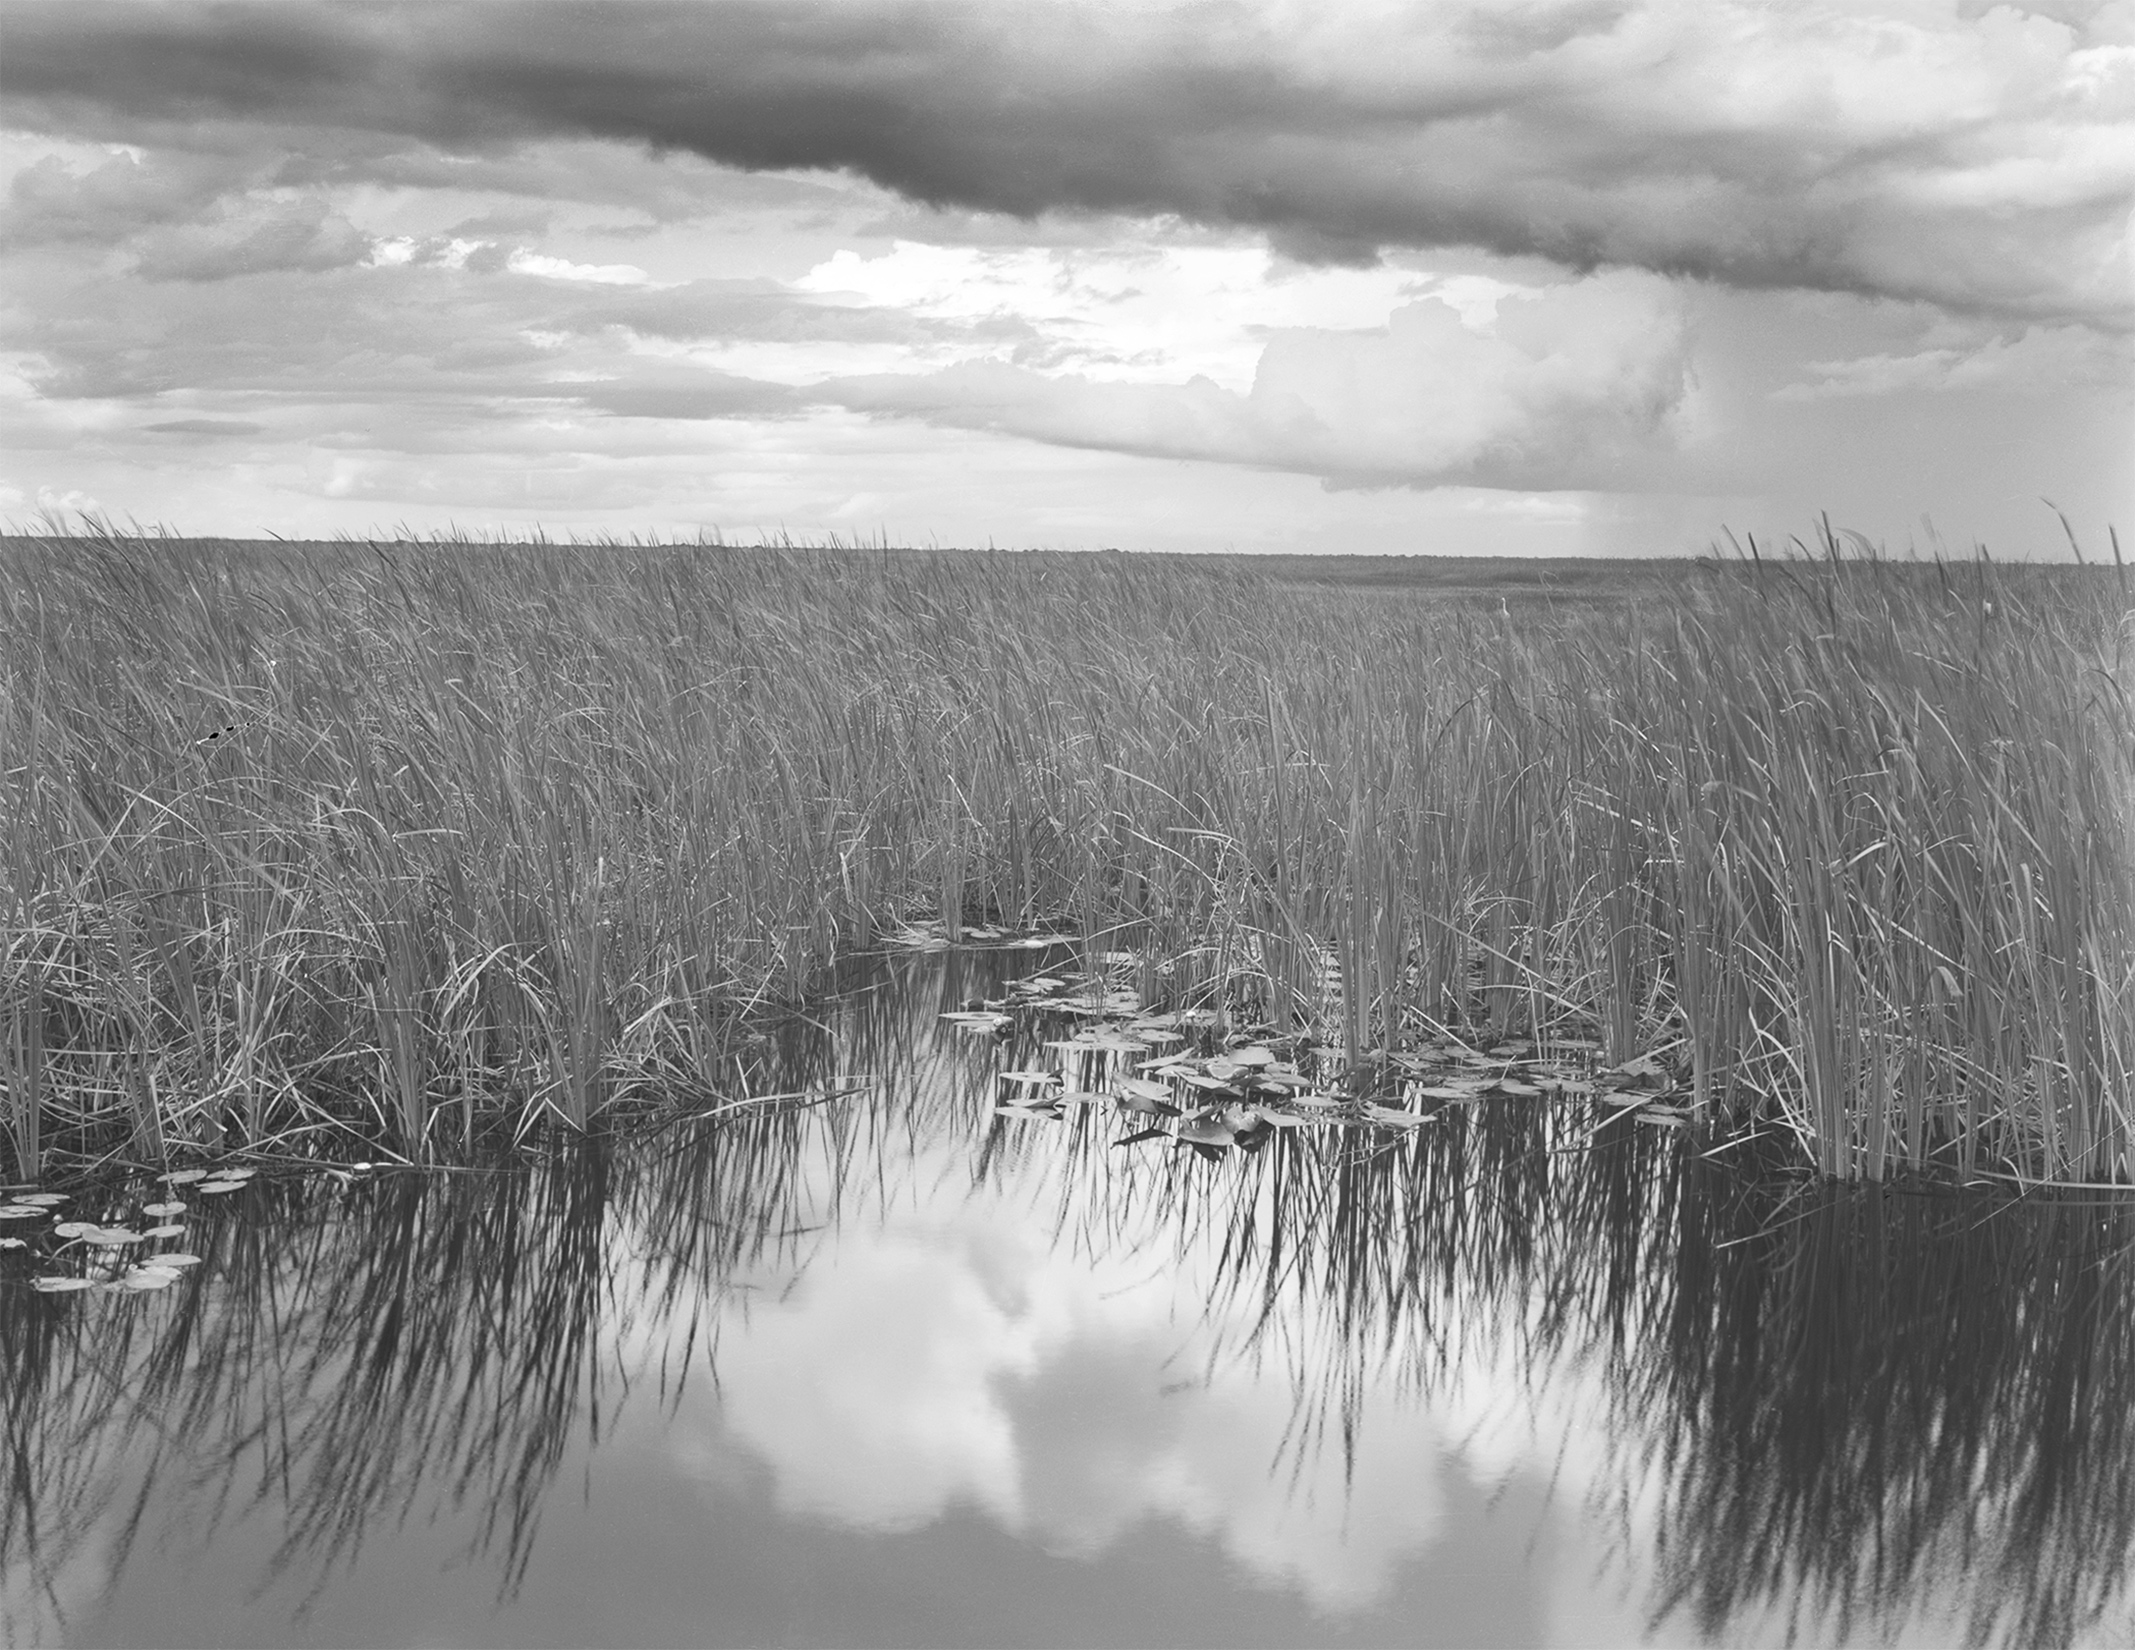 click to enter the Florida Everglades gallery